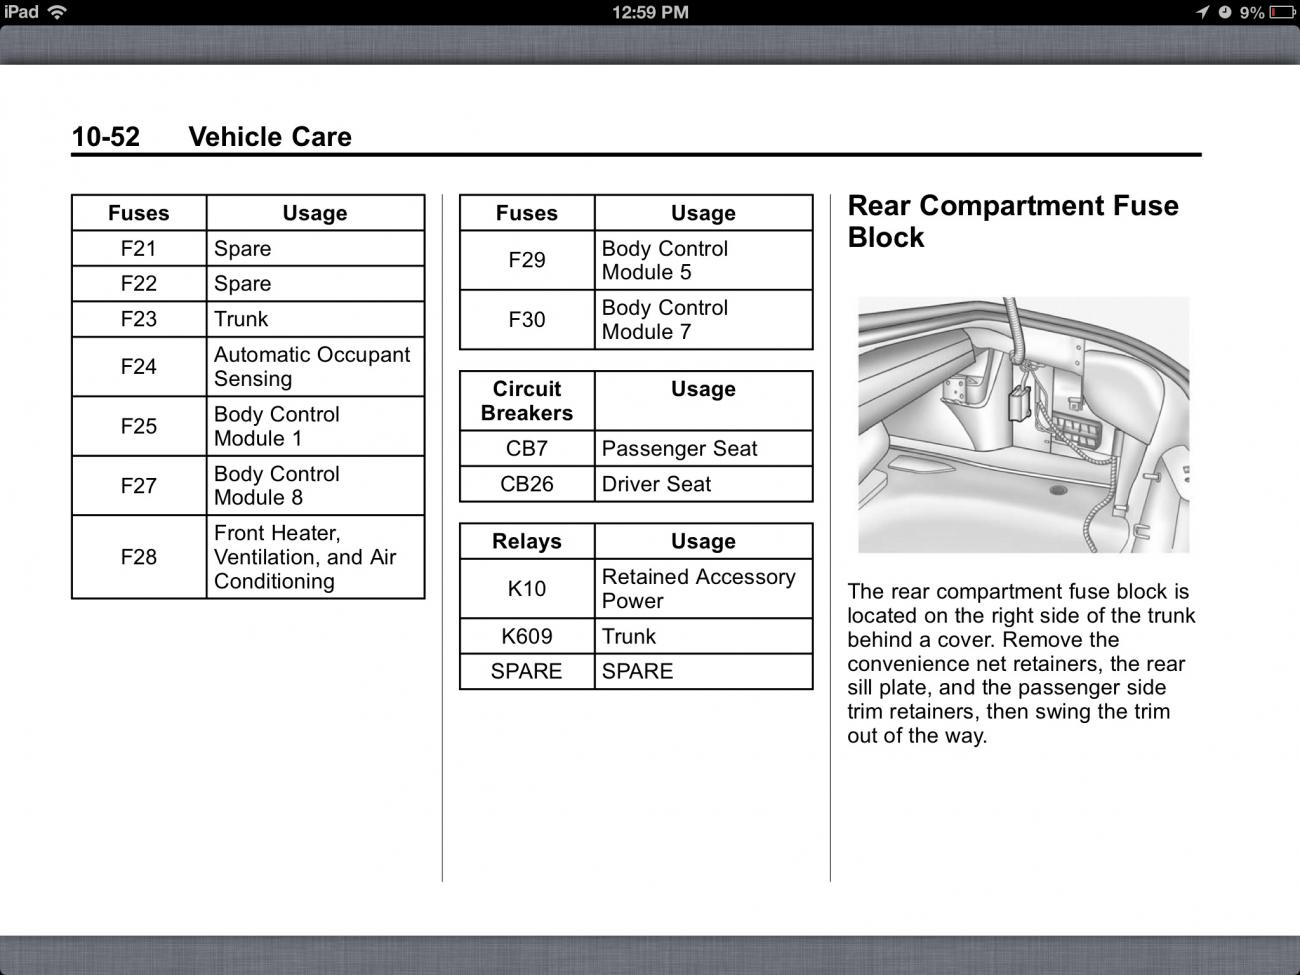 2010 Corvette Fuse Box Location Wiring Library Diagram No In The Trunk Wherez It At Camaro5 Chevy Camaro